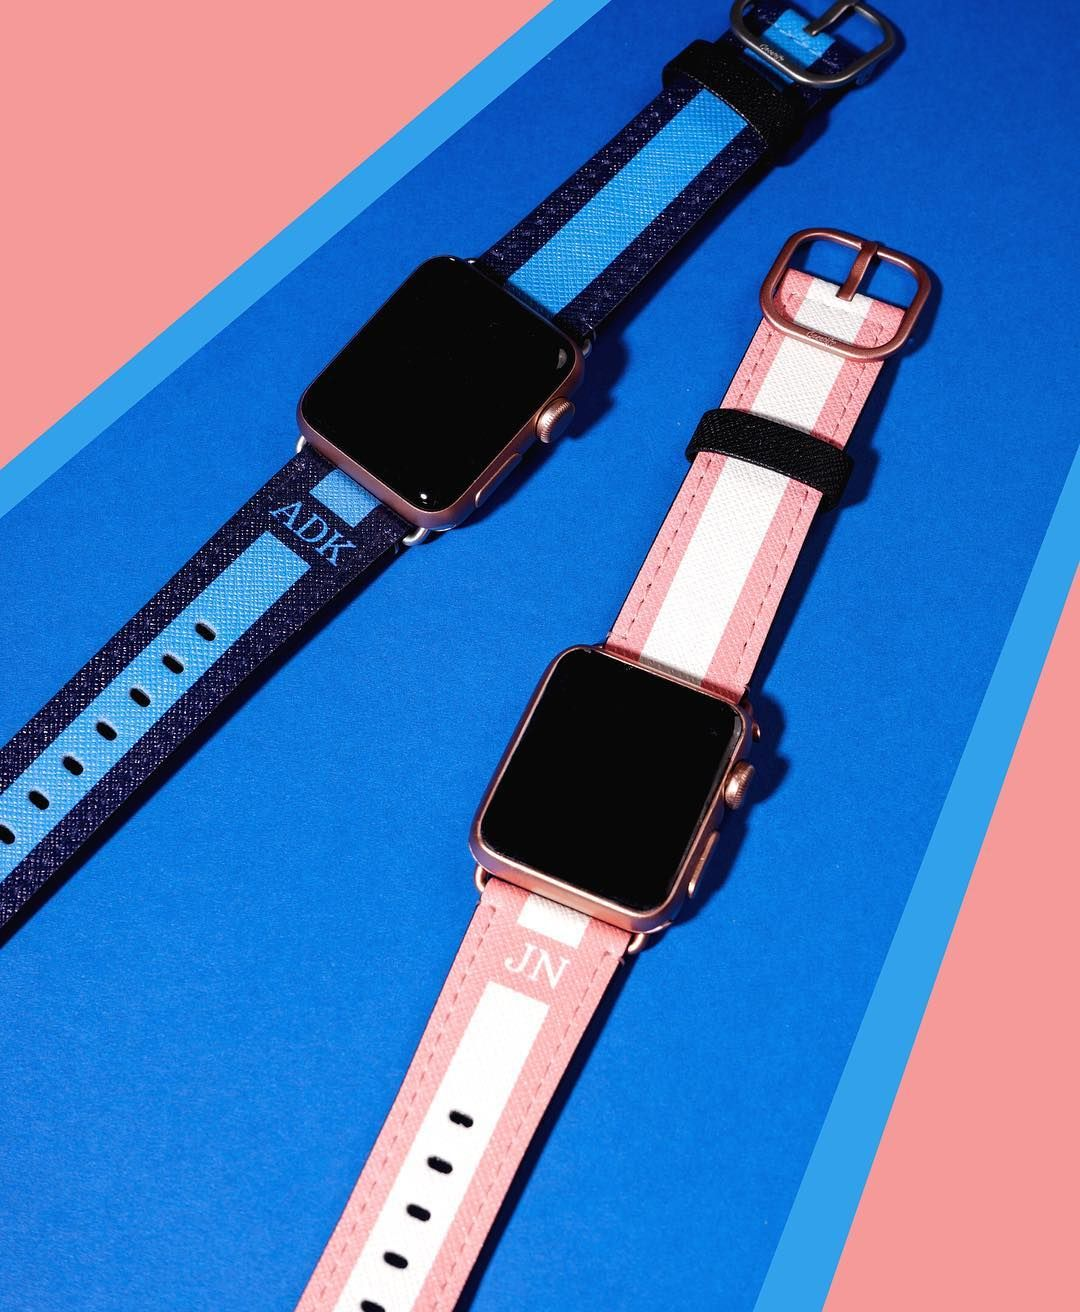 Sleek Chic Original You Comingsoon Customcasetify Monogram Casetifybands Custom Cute Apple Watch Bands Apple Watch Bands Apple Accessories